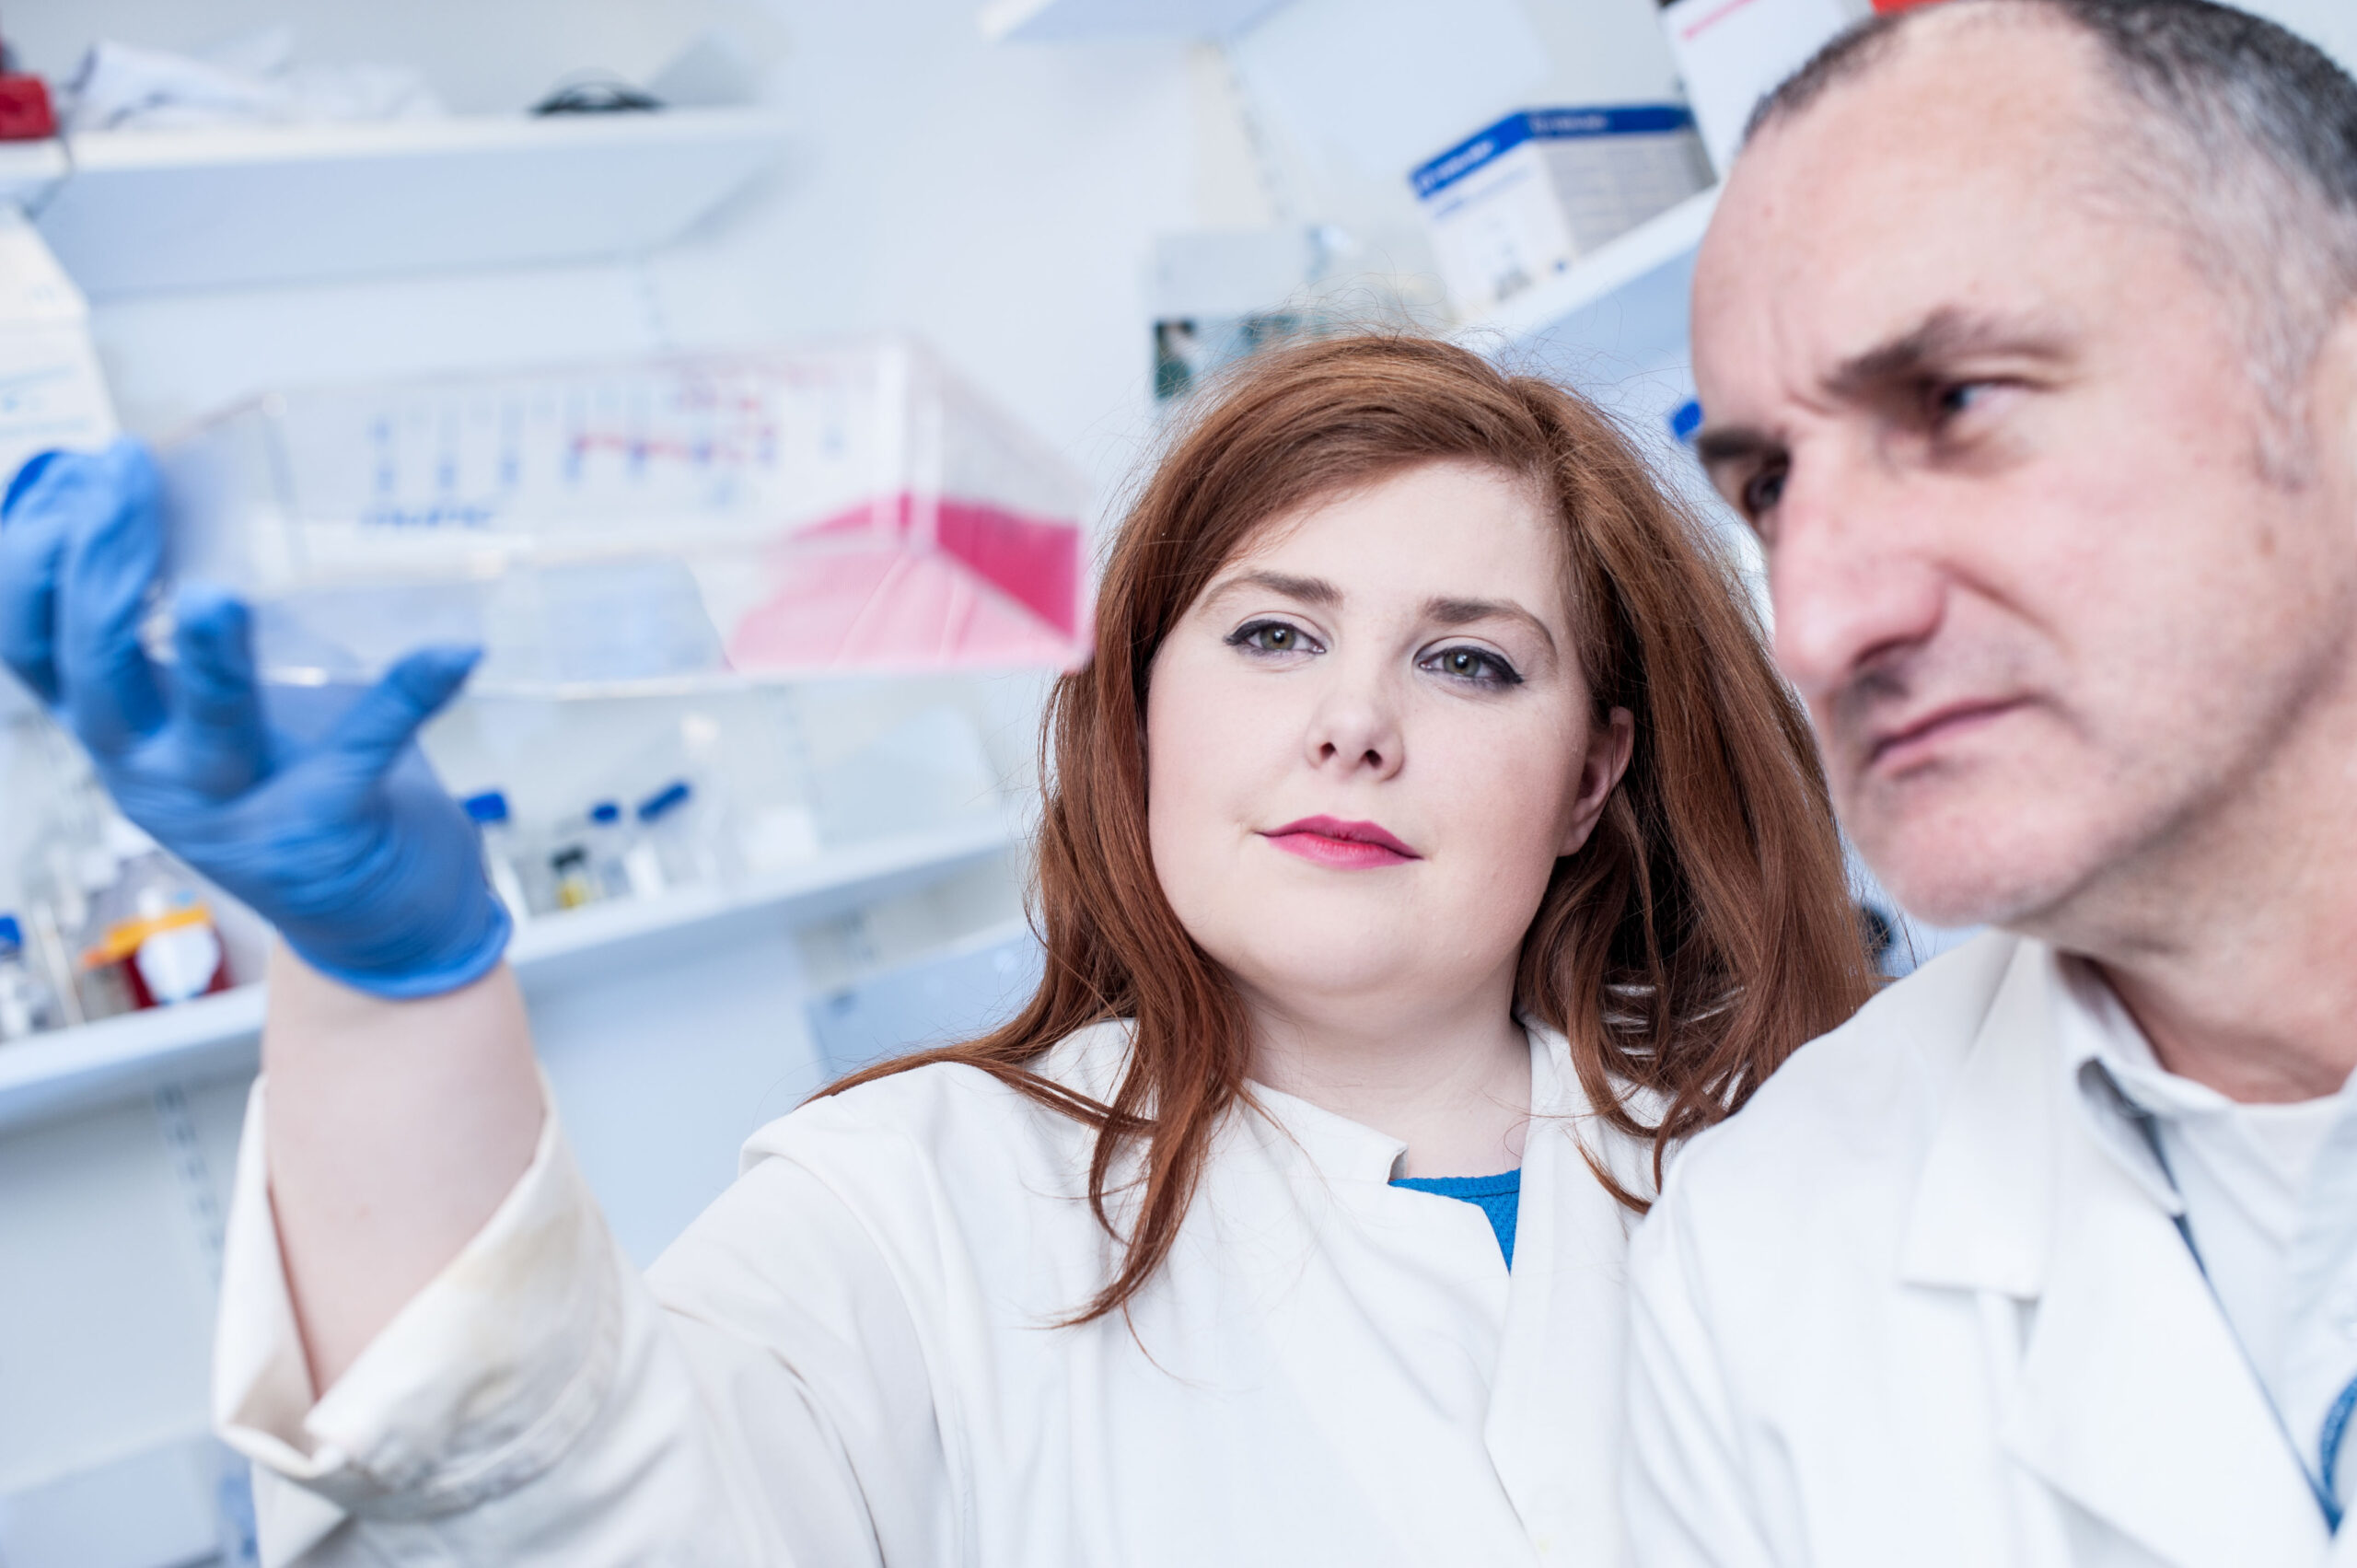 Ulster University rises to number 2 in UK PhD rankings - Newry Times - newry news today - Biomedical science PhD